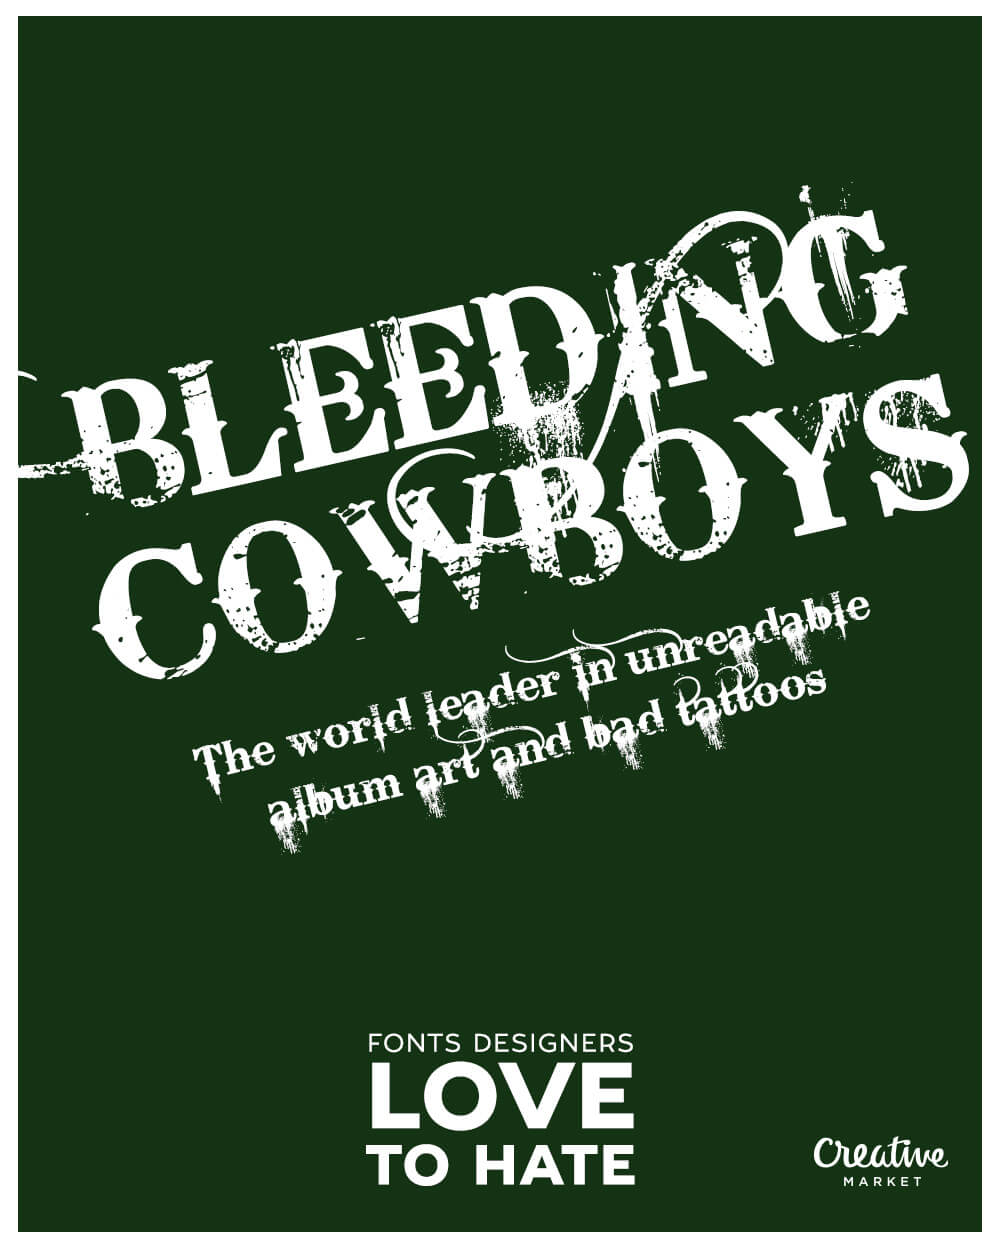 10 fonts designers love to hate: Bleeding Cowboys